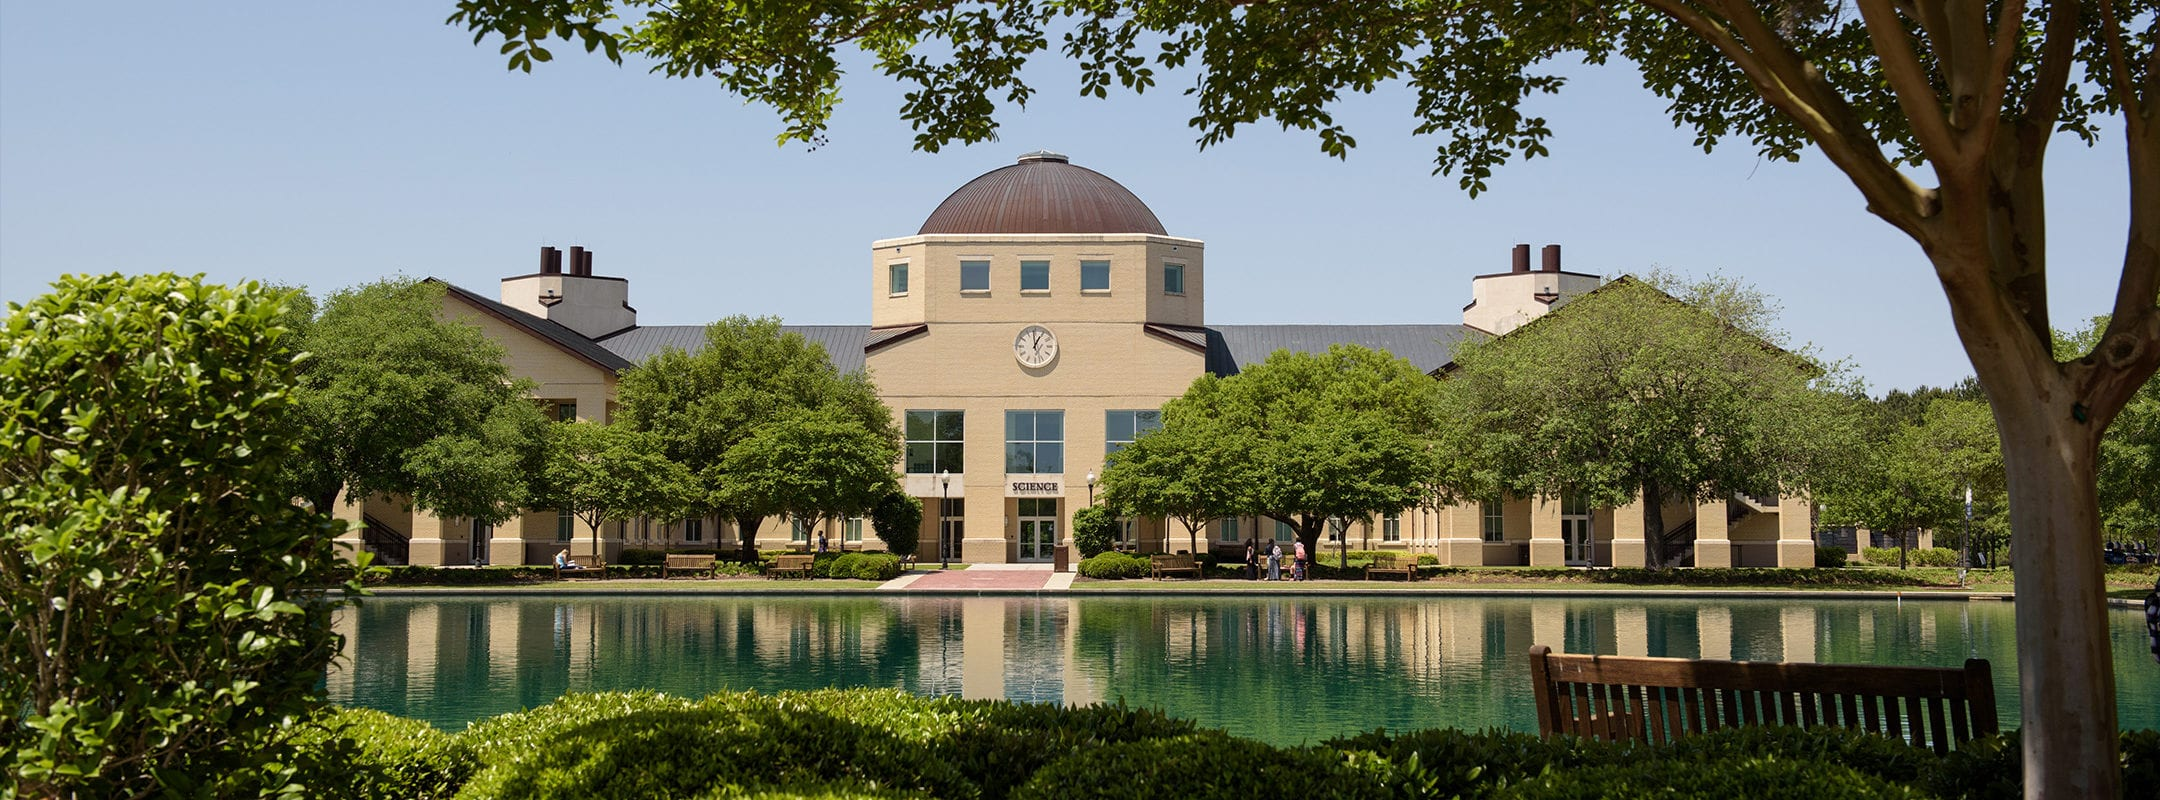 Charleston Southern University's Science building with the reflection pond on a sunny day